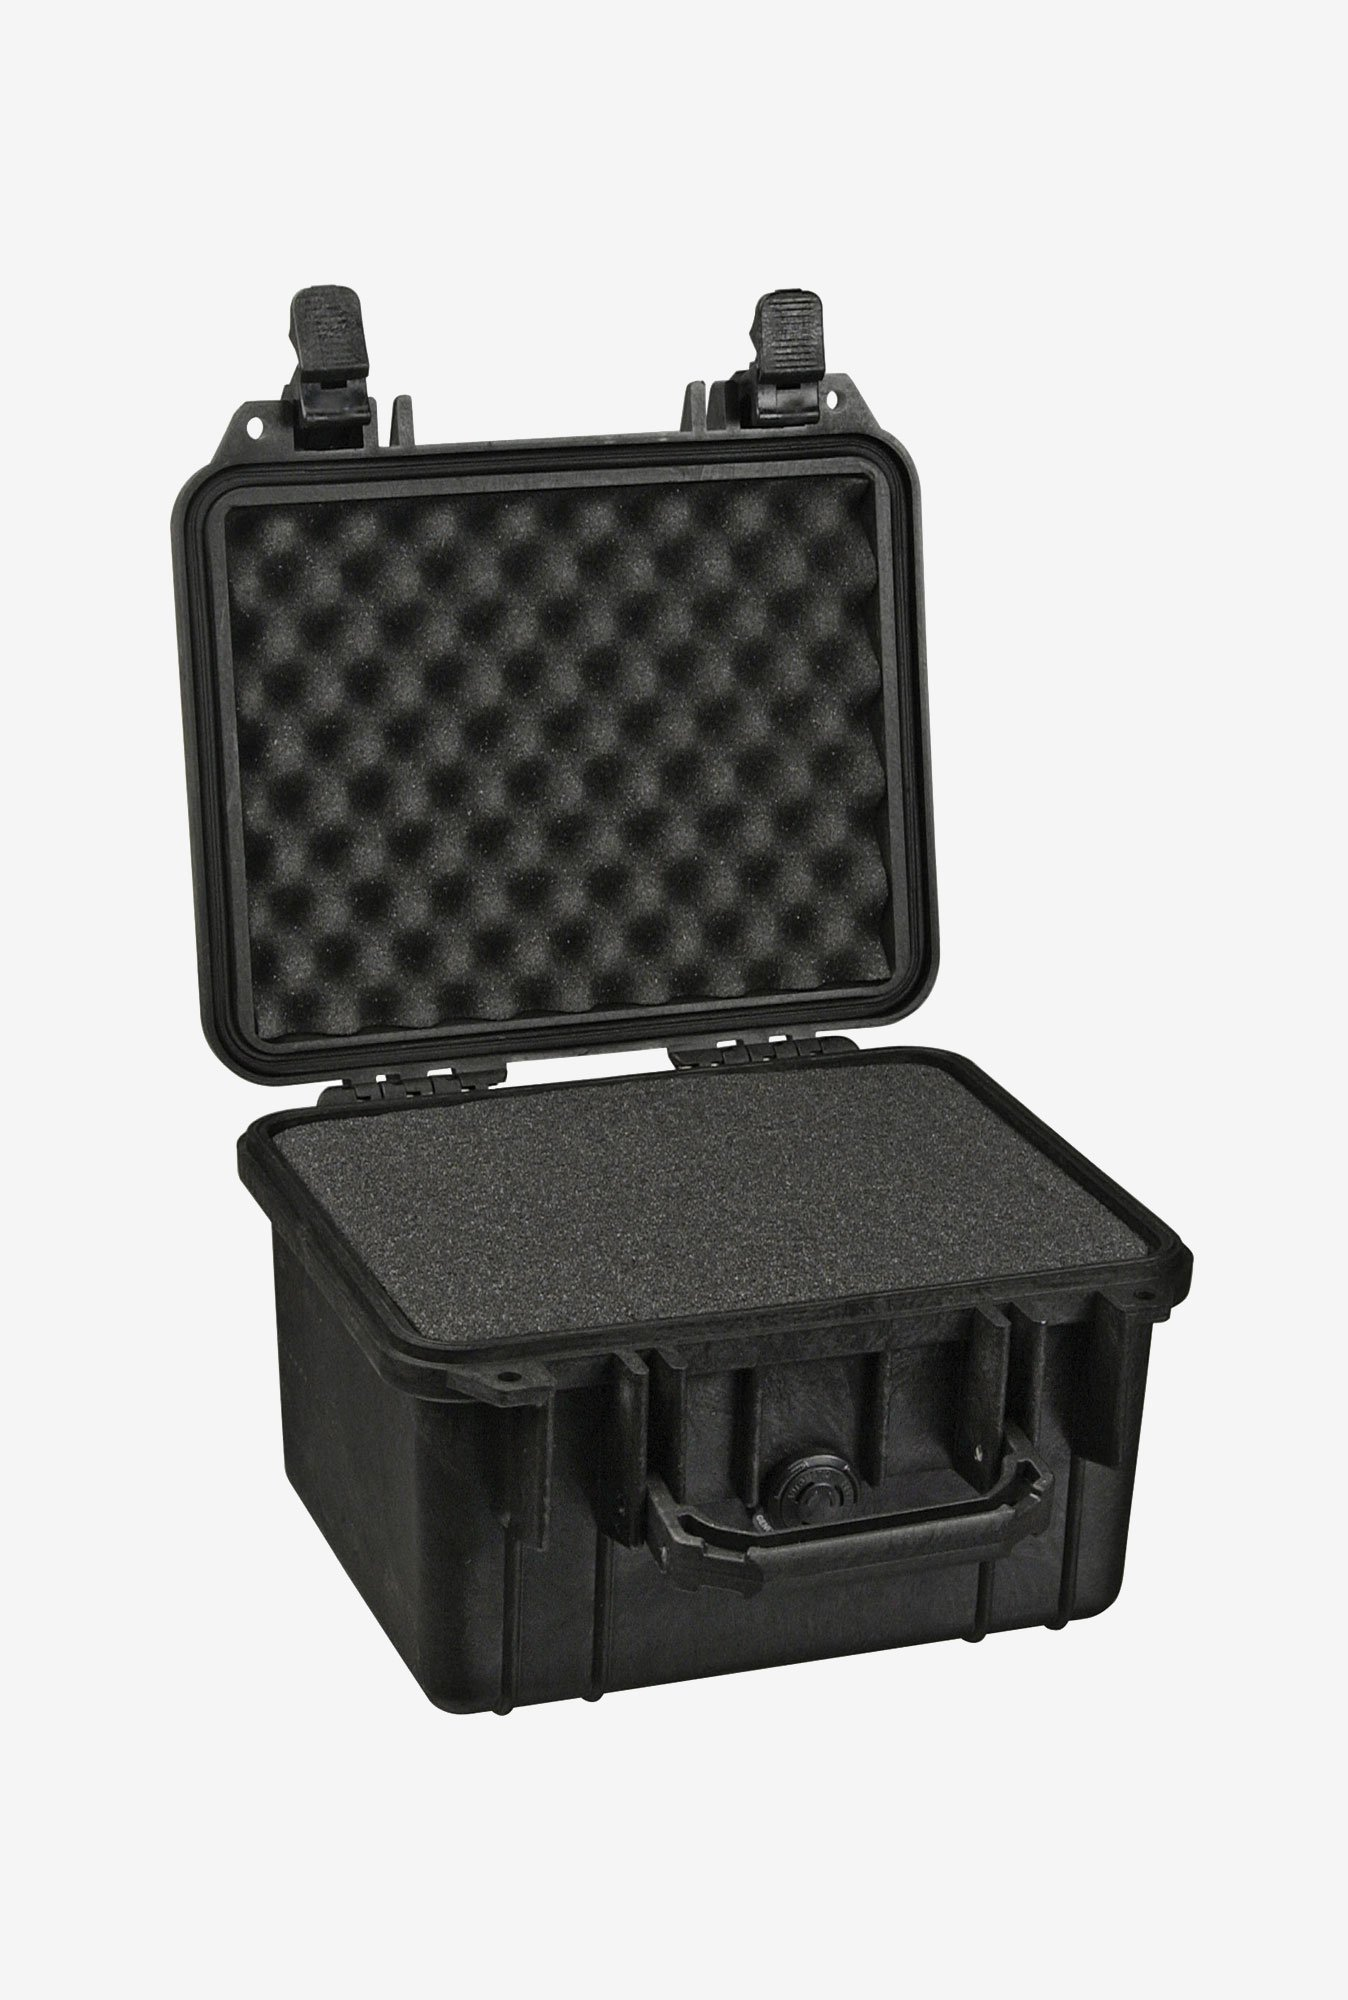 Pelican Small DSLR Camera Case (Black)